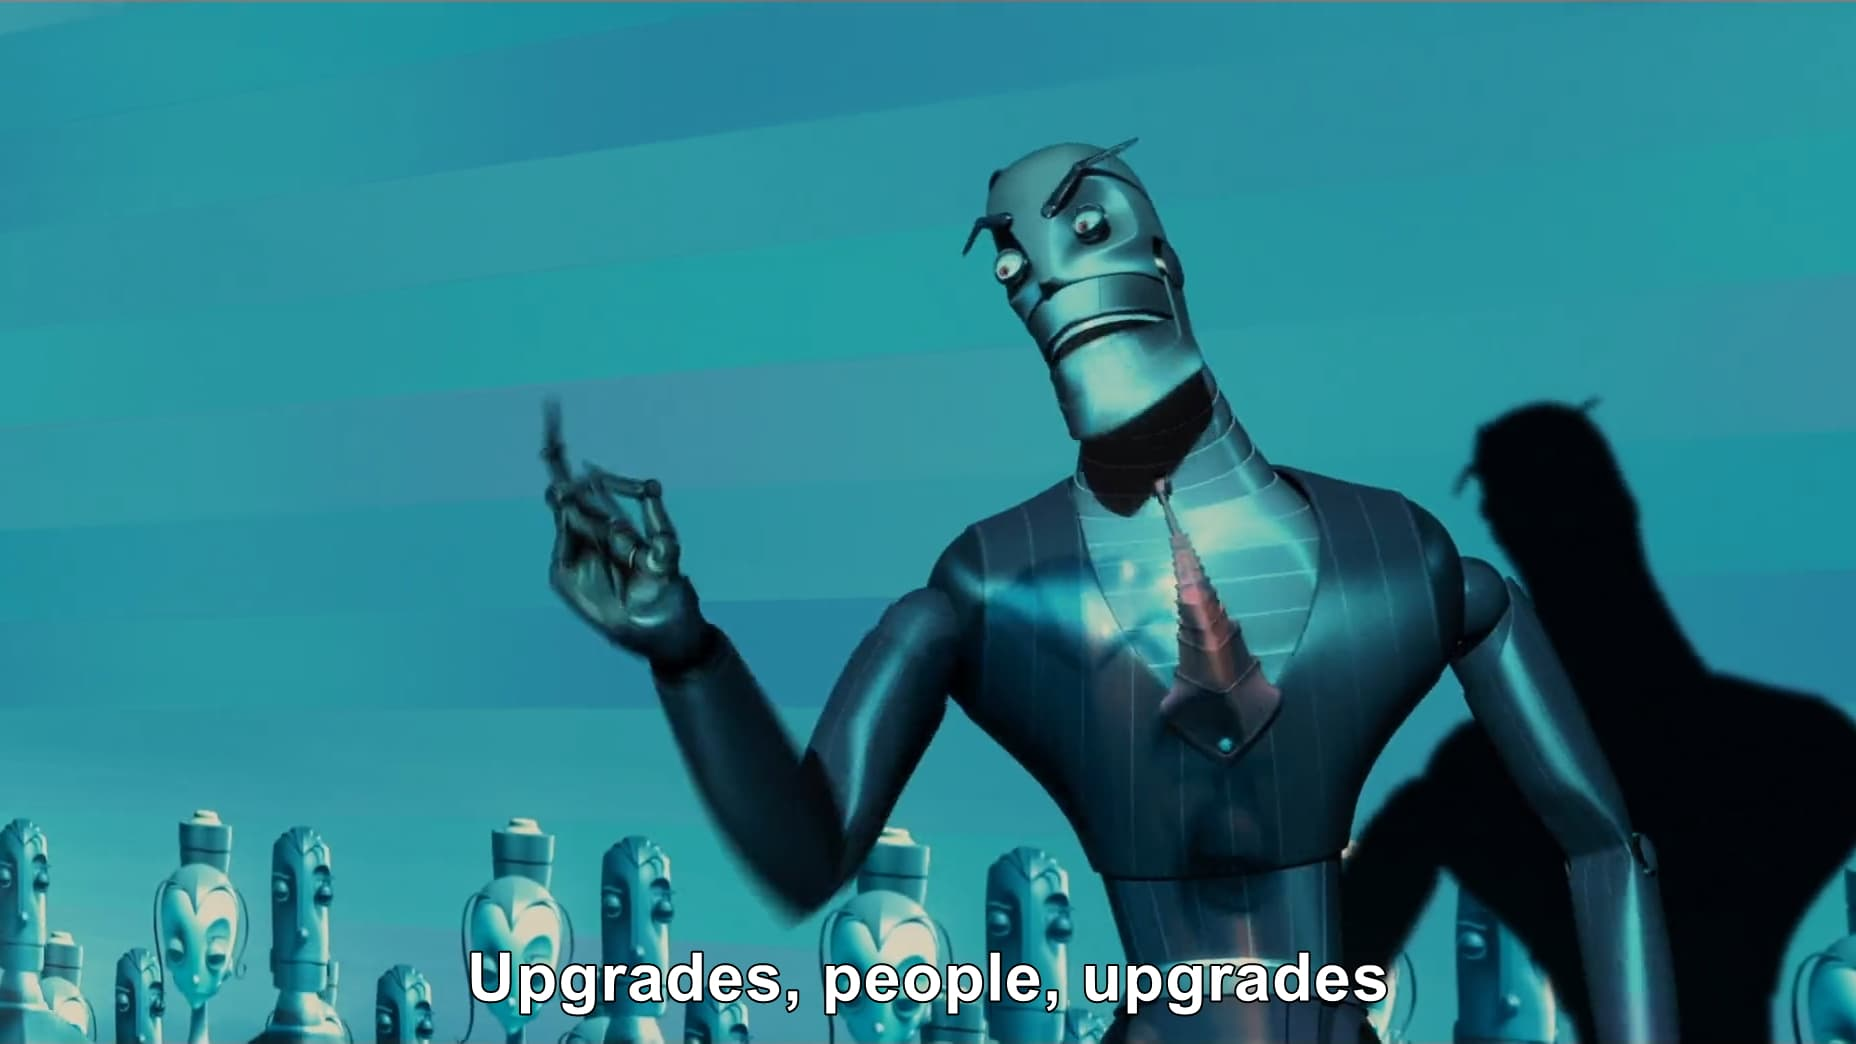 Upgrades are important for you and your customers.